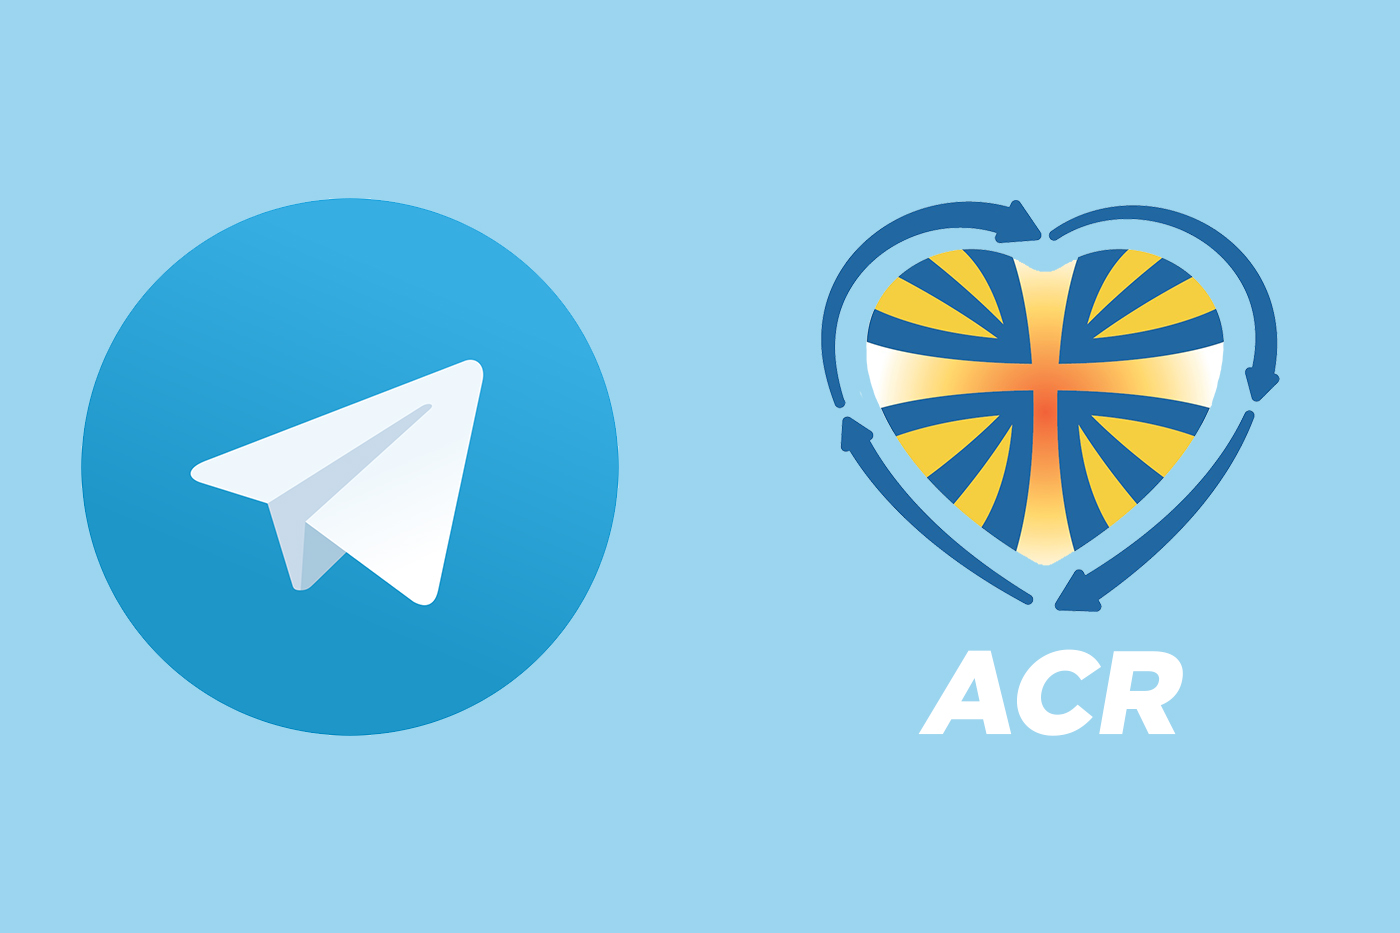 acr-telegram